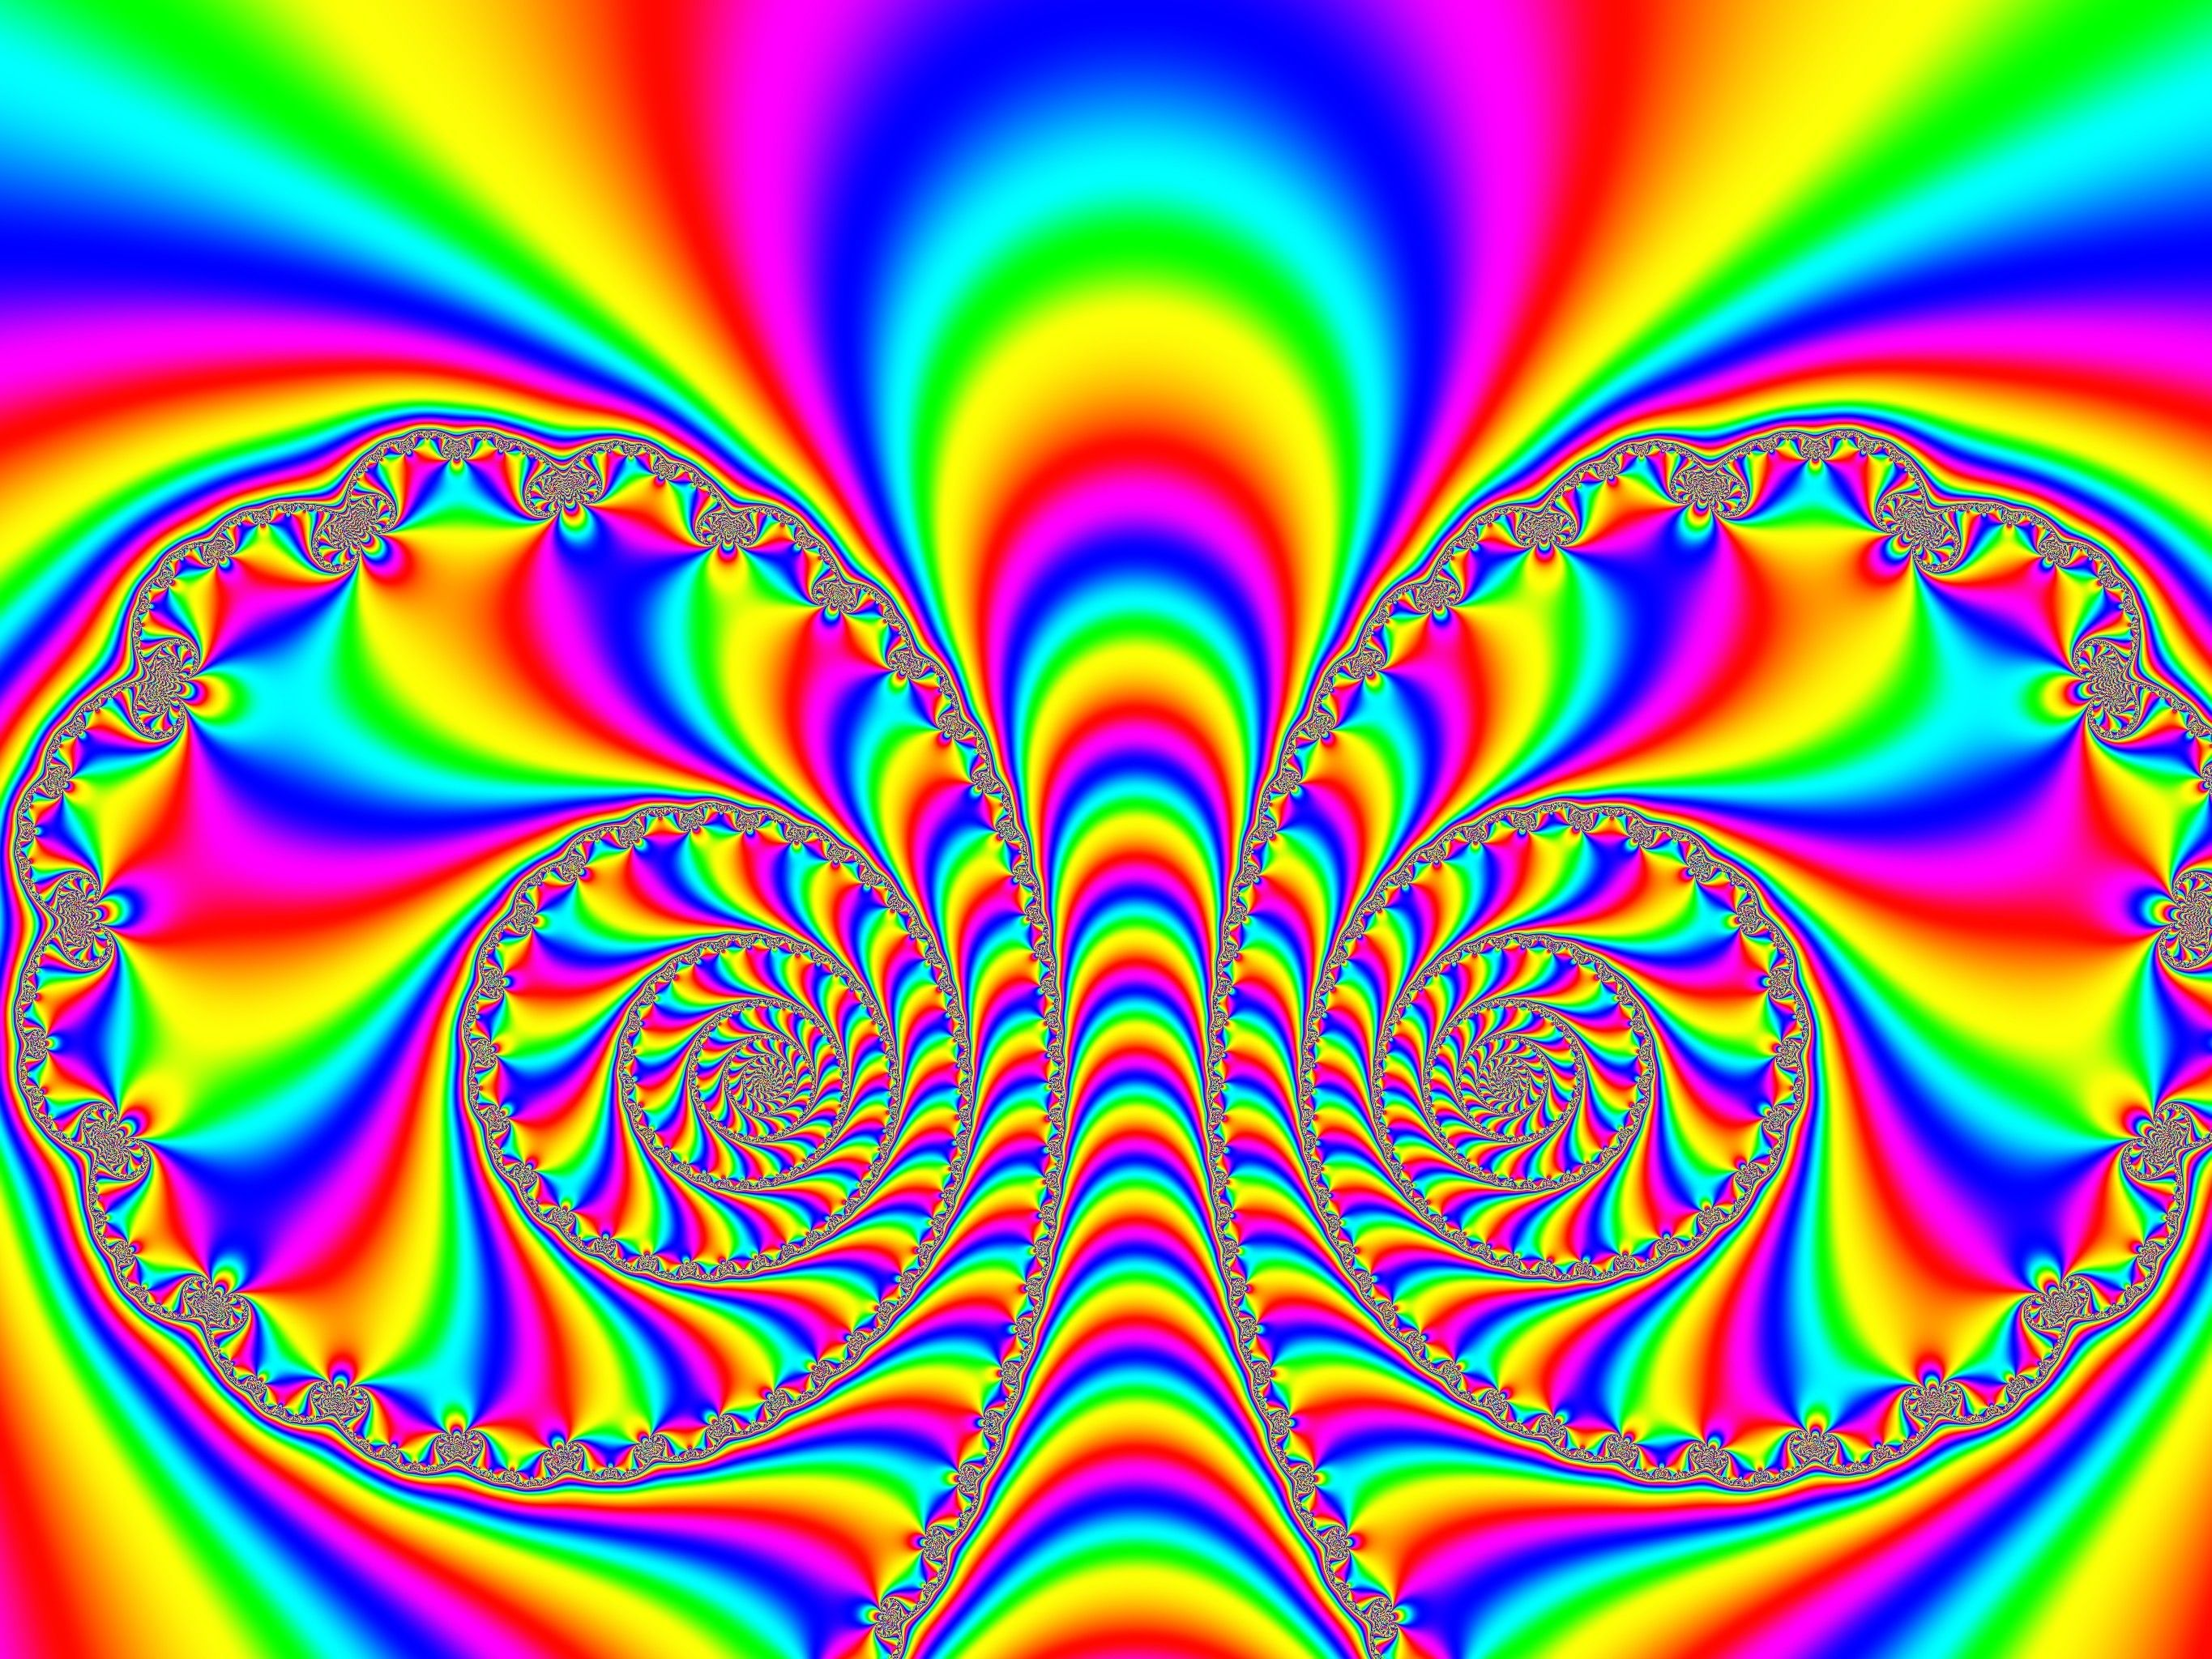 Res 2730x2048 Cool Trippy Backgrounds Trippy Wallpaper Trippy Pictures Trippy Backgrounds